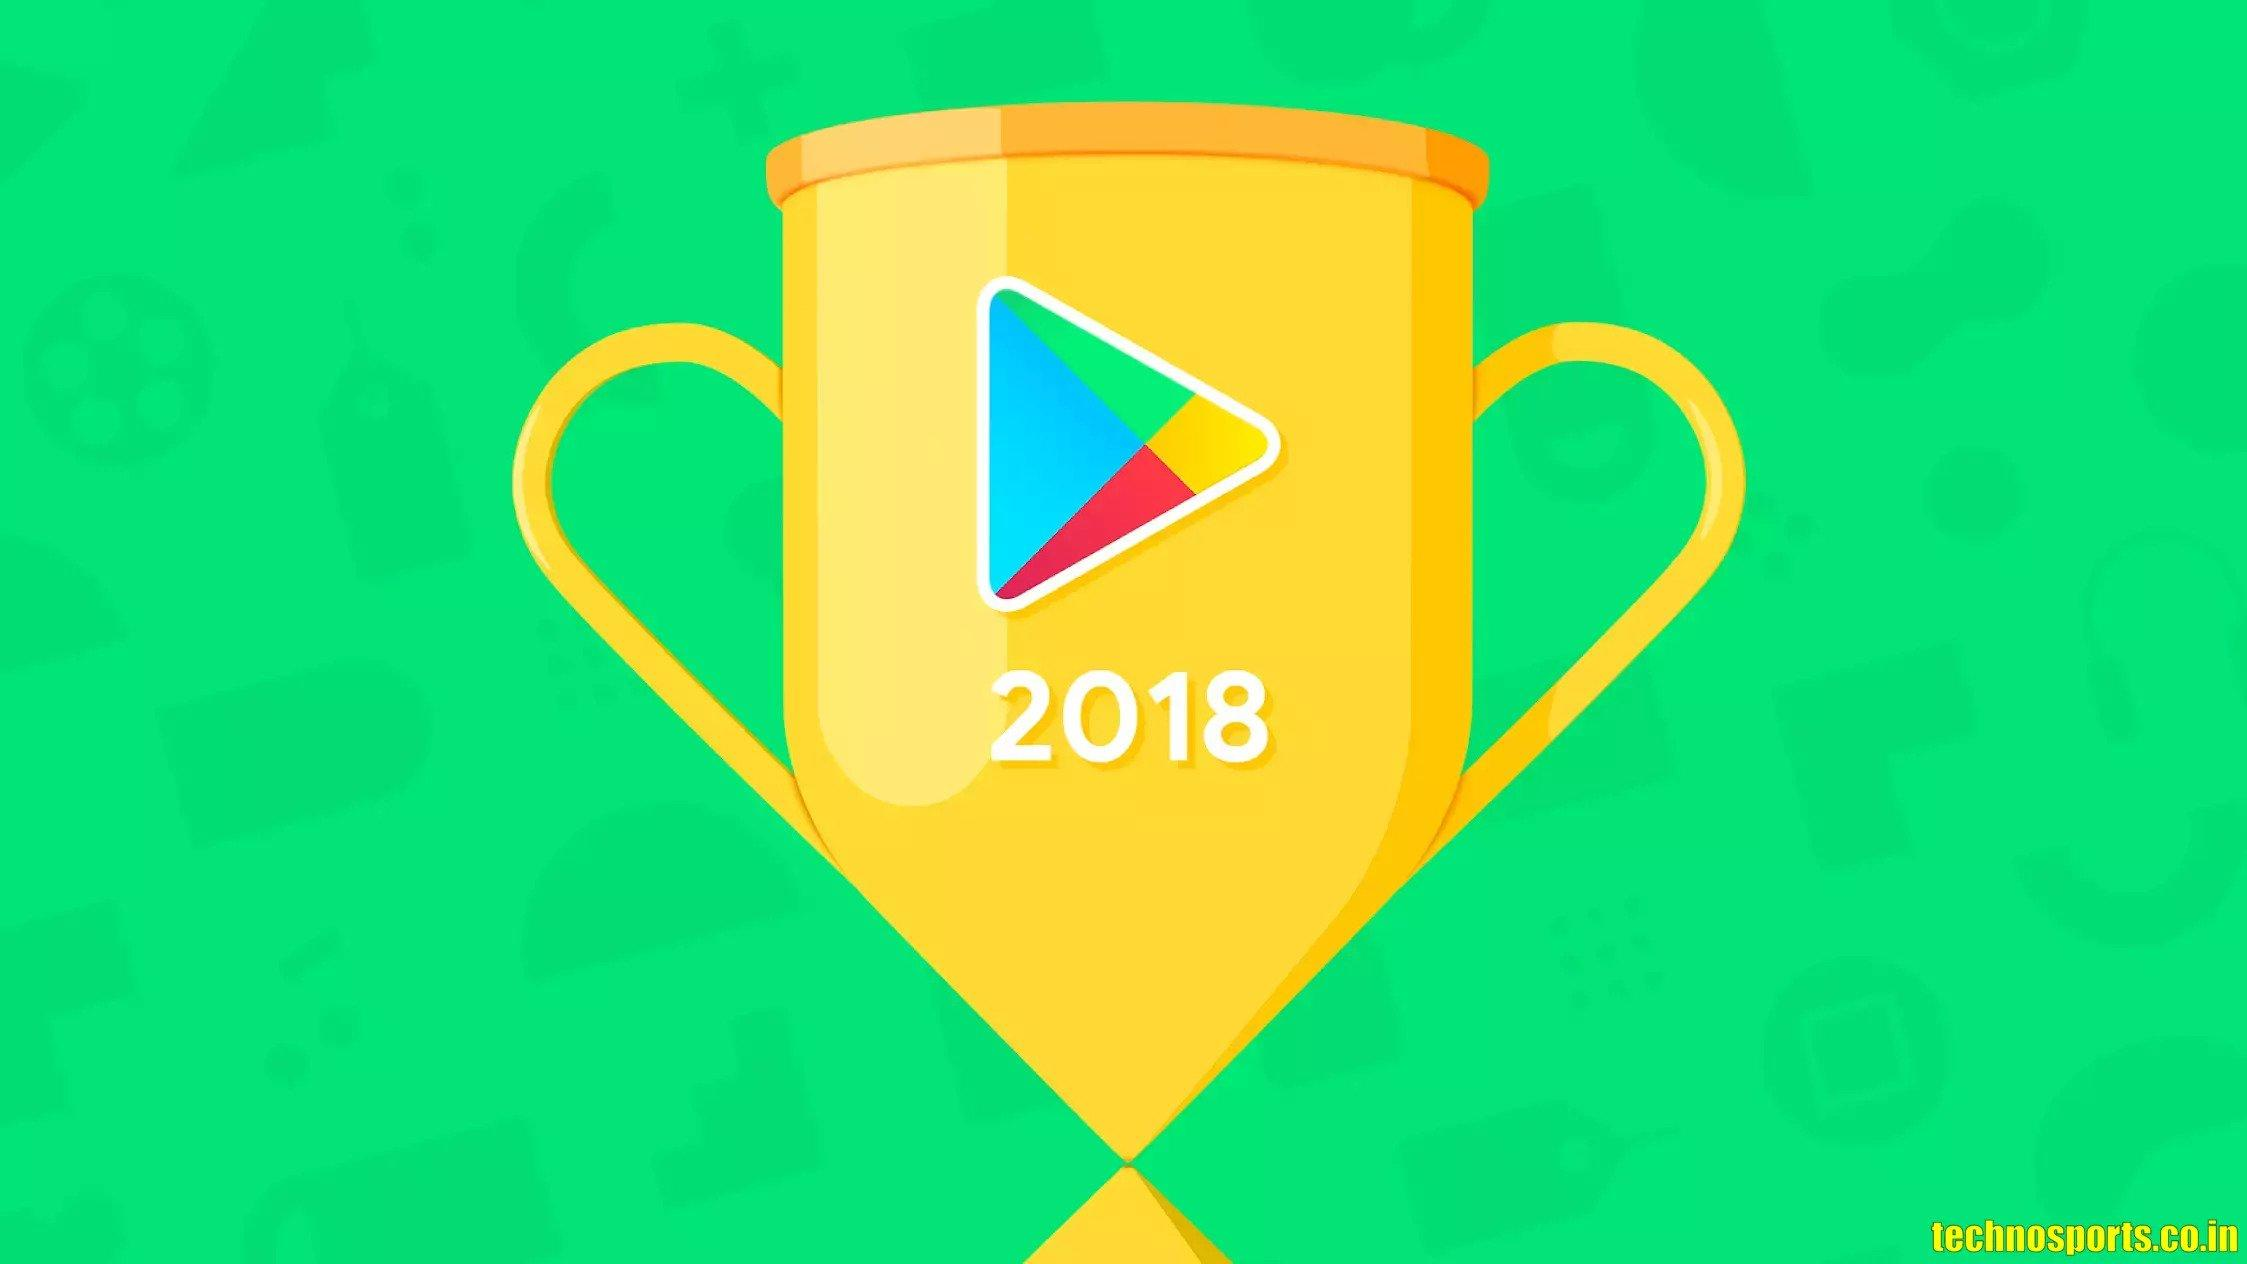 Best of 2018_Google Play_technosports.co.in